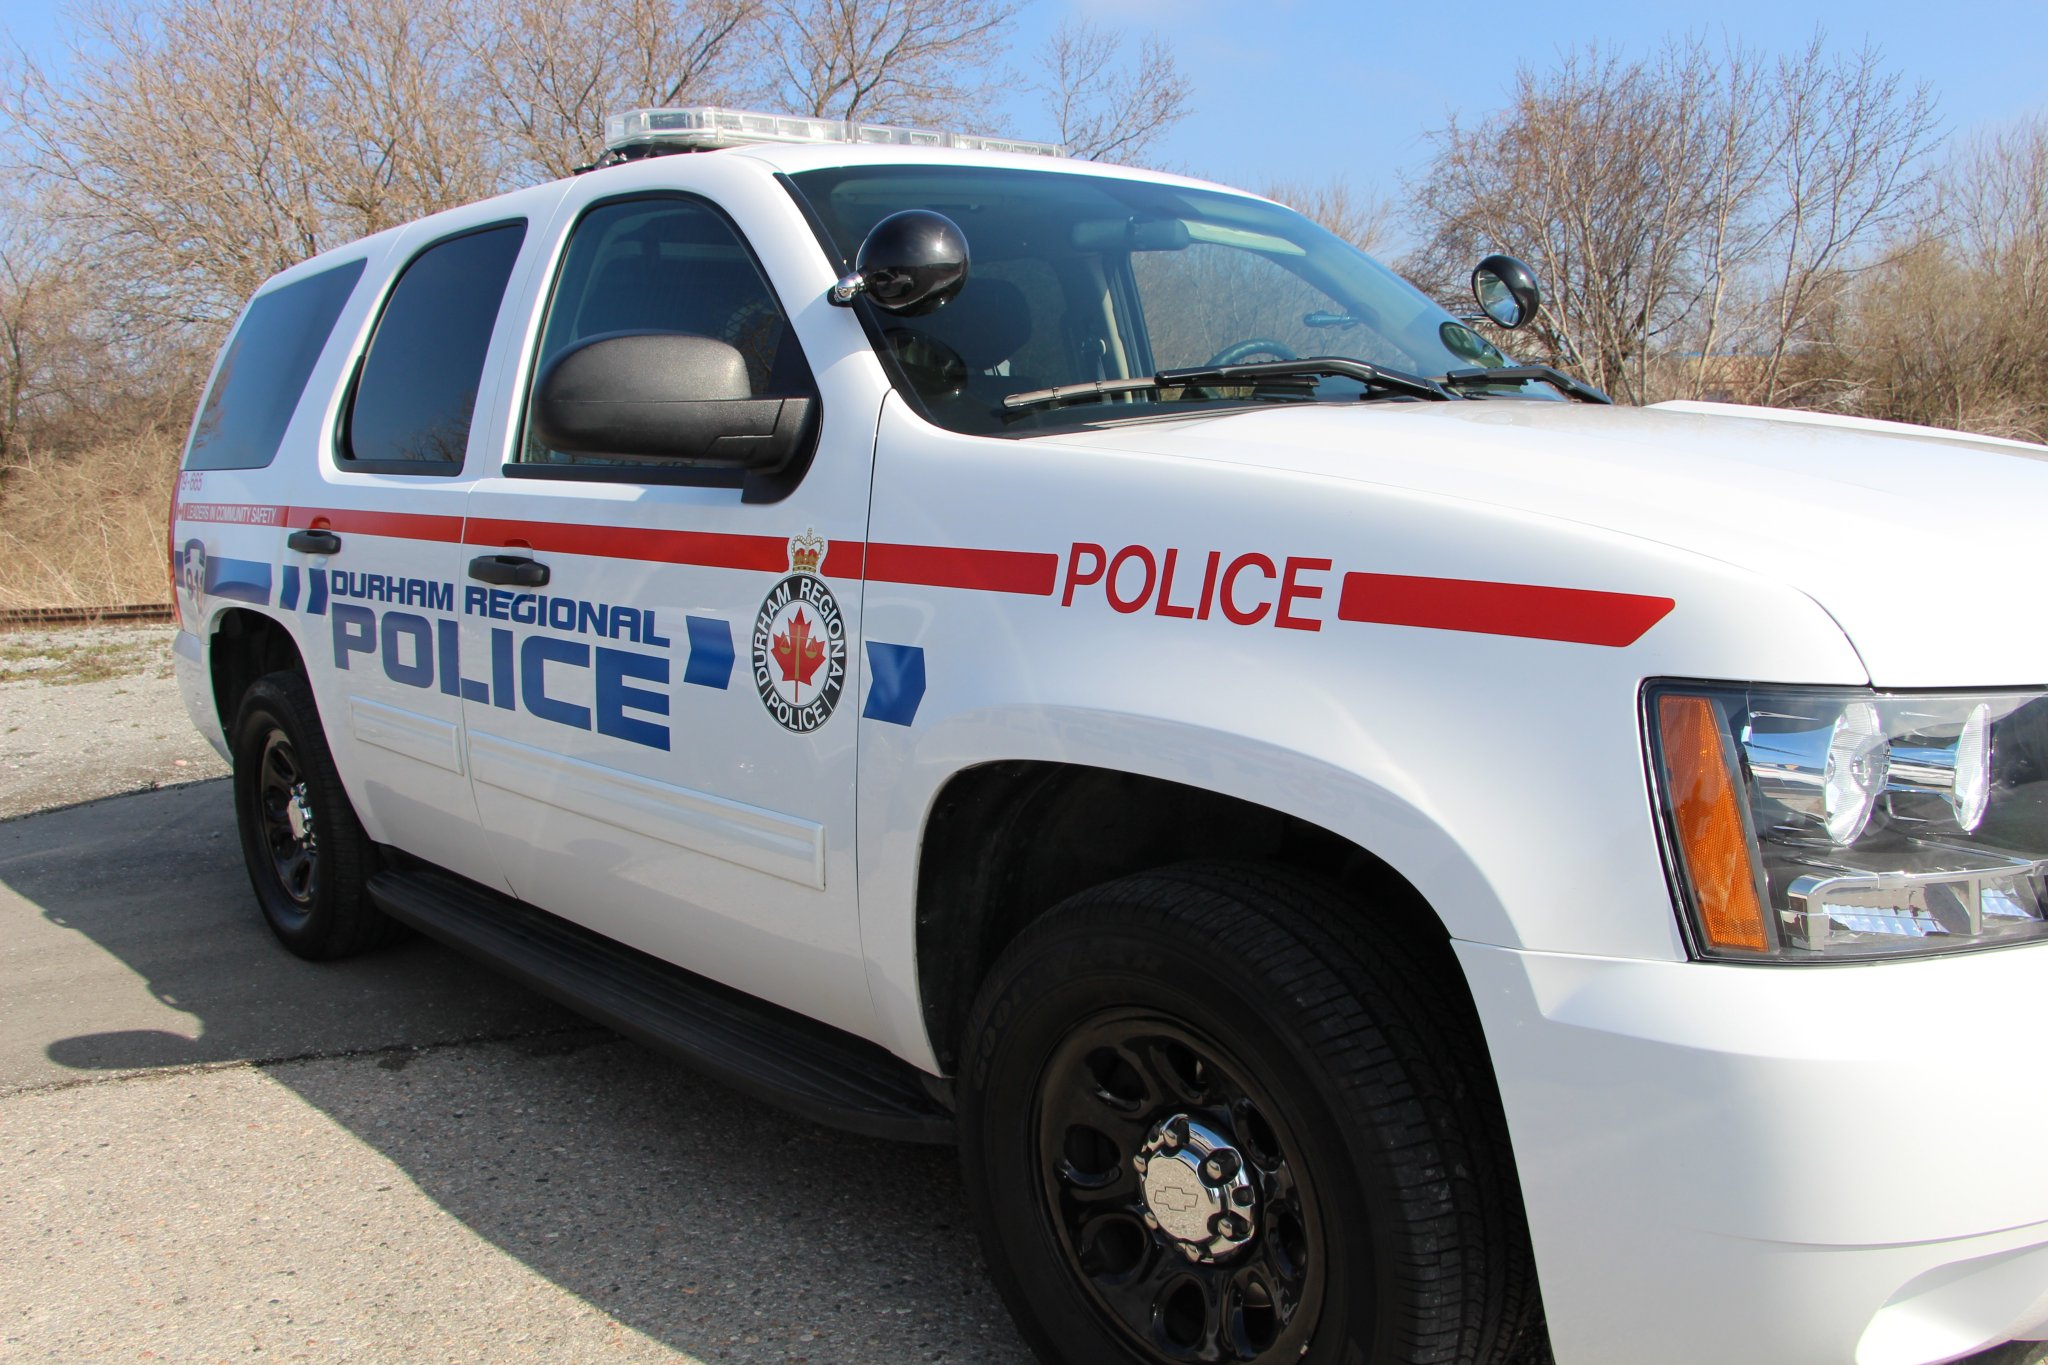 Two stabbing victims taken to hospital following possible home invasion in Oshawa